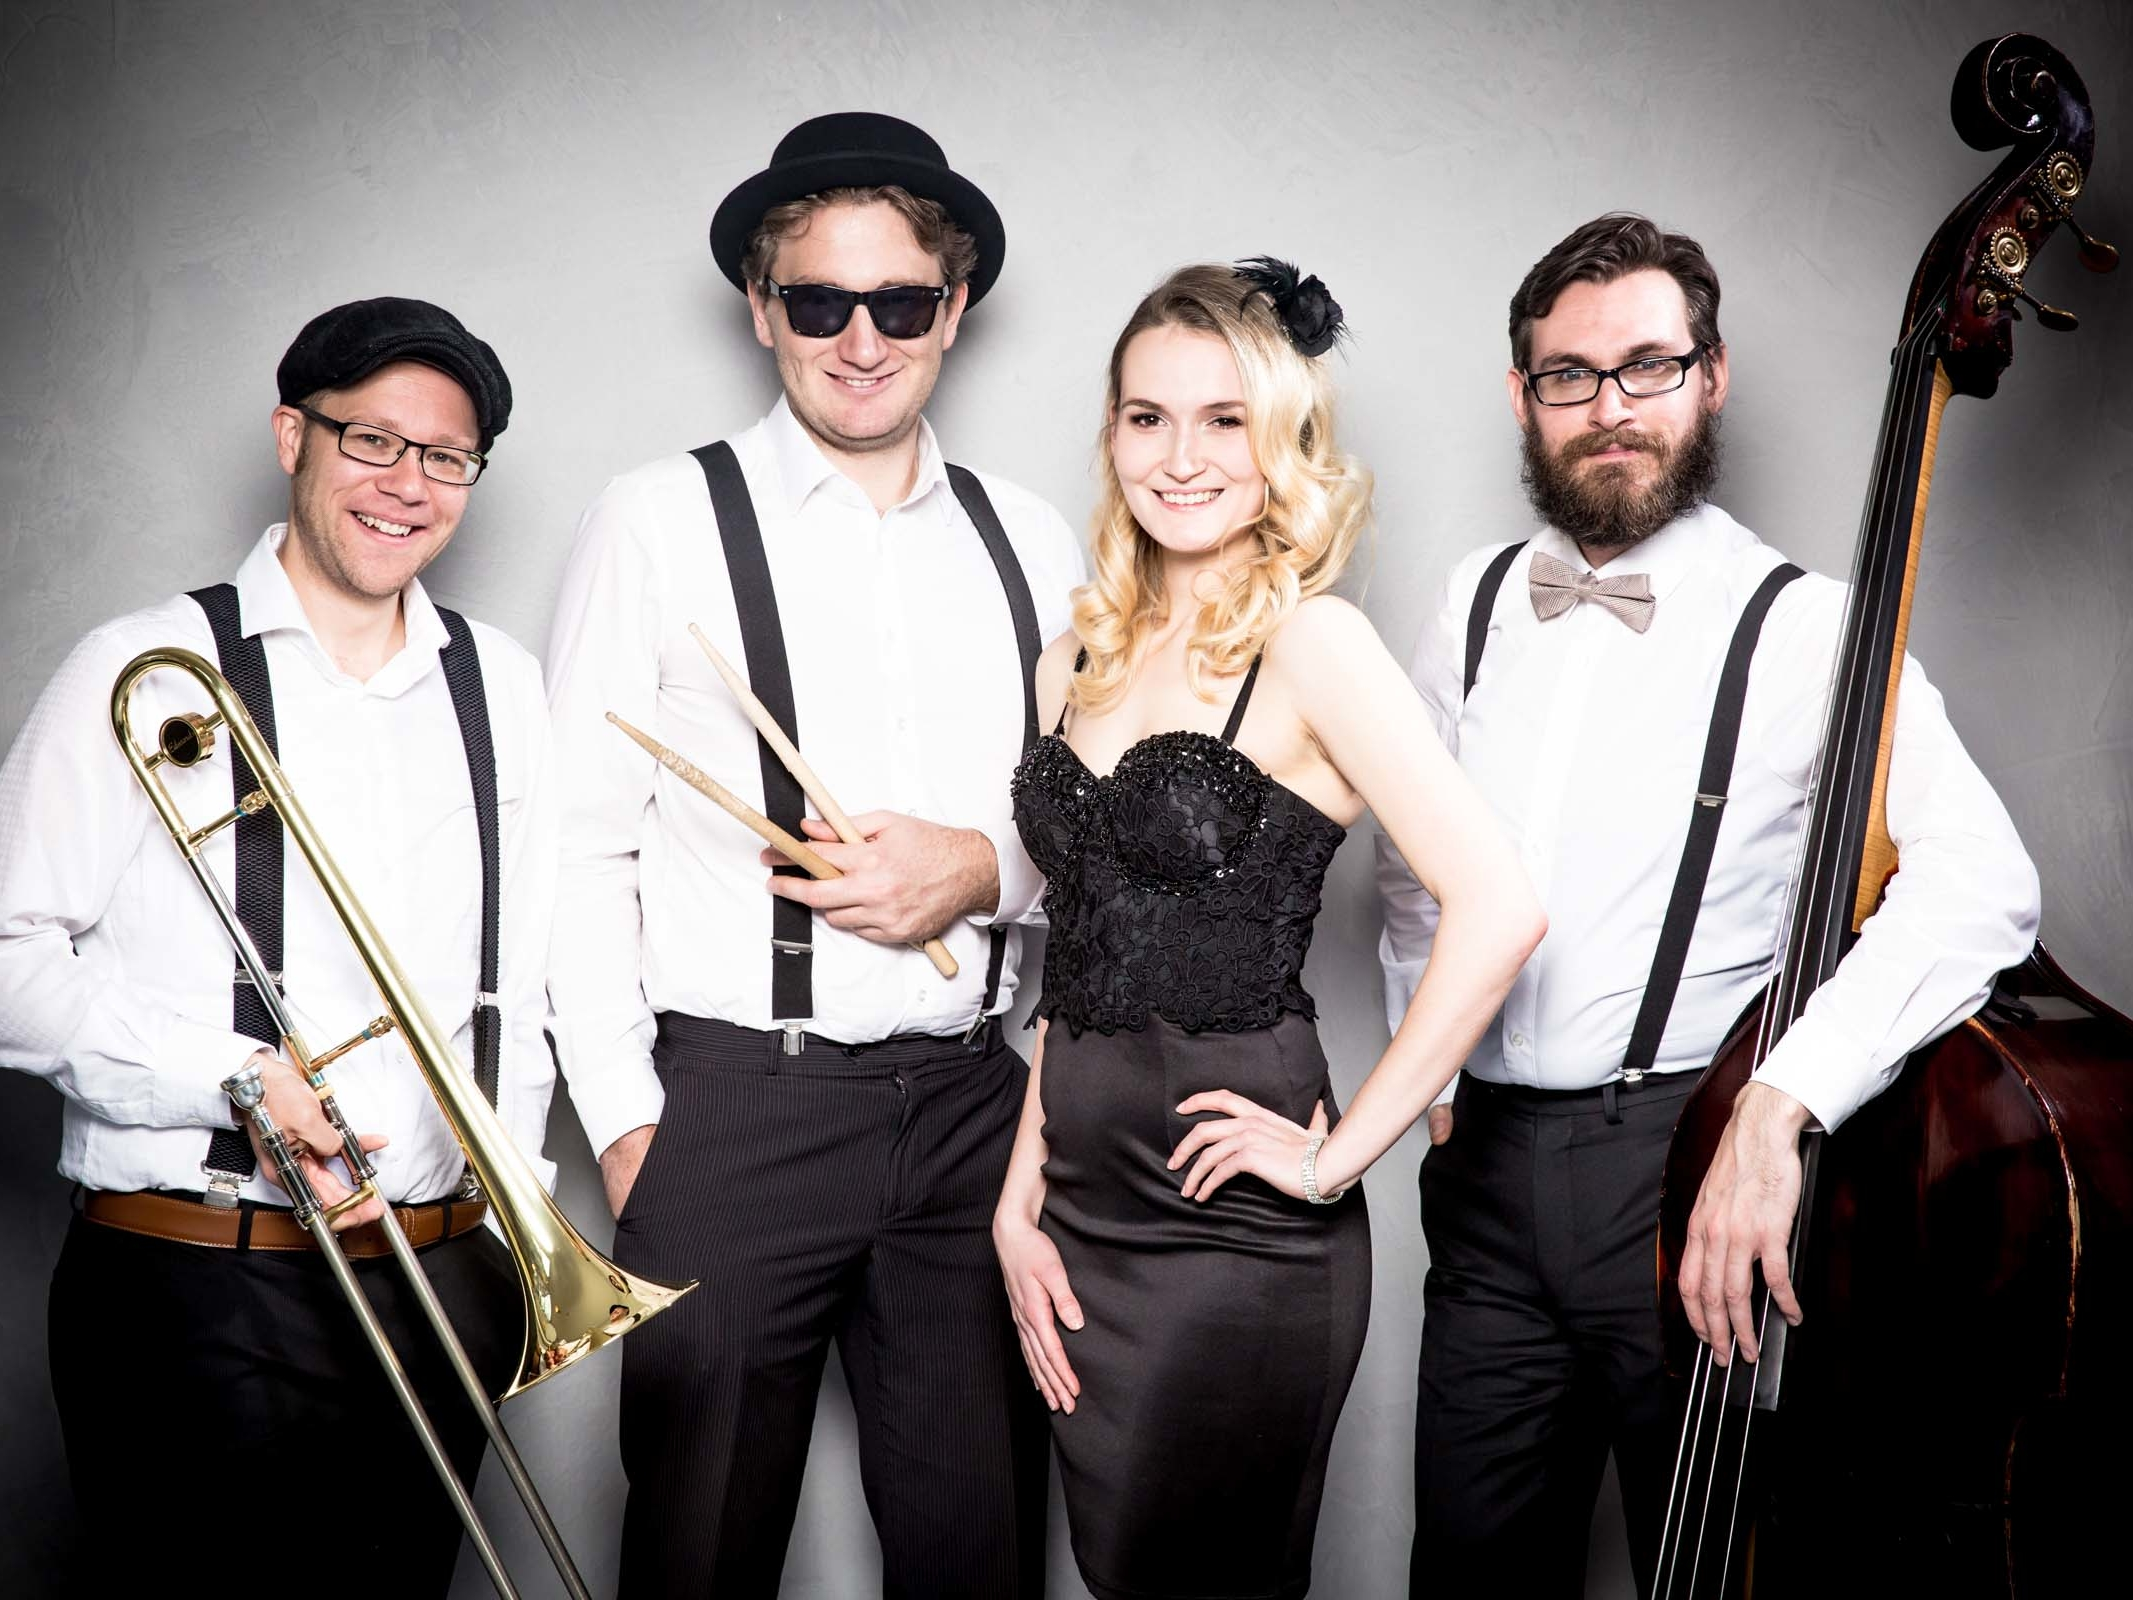 Jazzband | Hannover | Livemusik | Musiker | Partyband | Liveband | Swingband | Band | Pianist | Trio | Duo | Soul | Motown | Swing | Jazz | Messe | Firmenfeier | Messeparty | Dinner | Empfang | Gala | Charity | Modern | Jukes